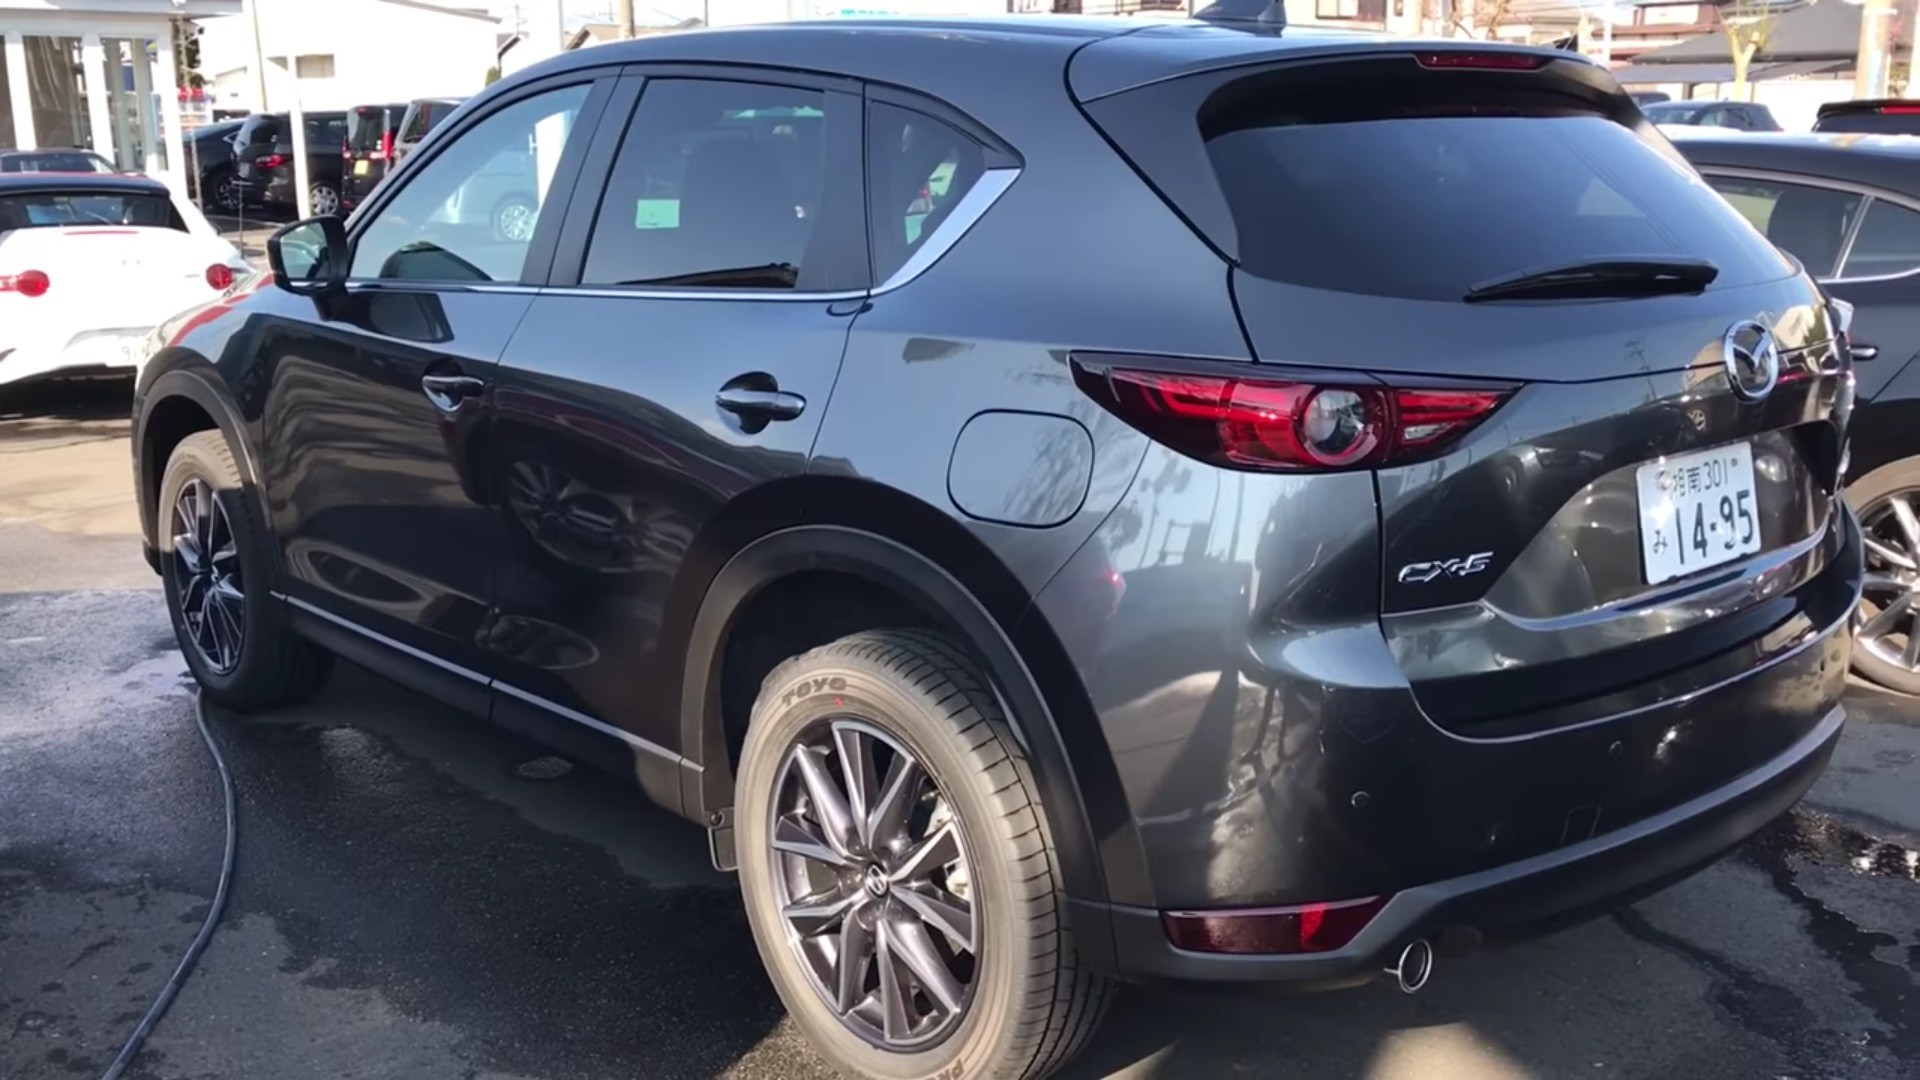 2017 mazda cx 5 pov test drive reveals how quiet the 2 2 liter diesel engine is autoevolution. Black Bedroom Furniture Sets. Home Design Ideas